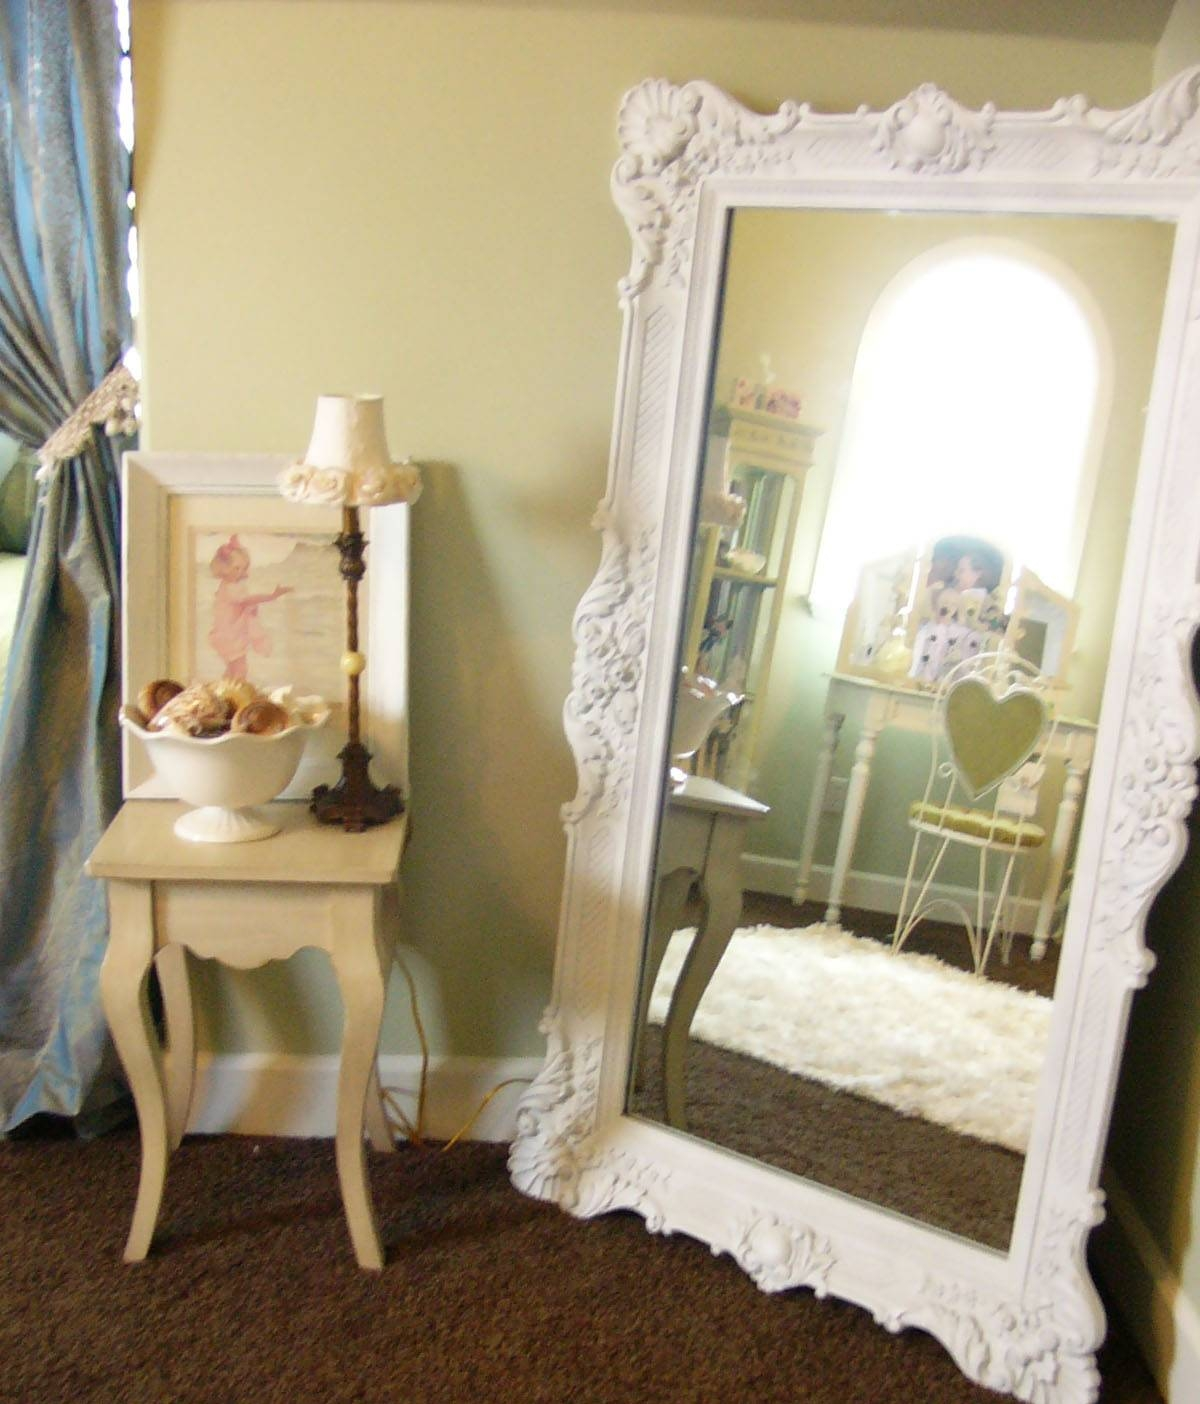 Large Free Standing Mirror 22 Awesome Exterior With Leaning Floor pertaining to Cream Standing Mirrors (Image 22 of 25)